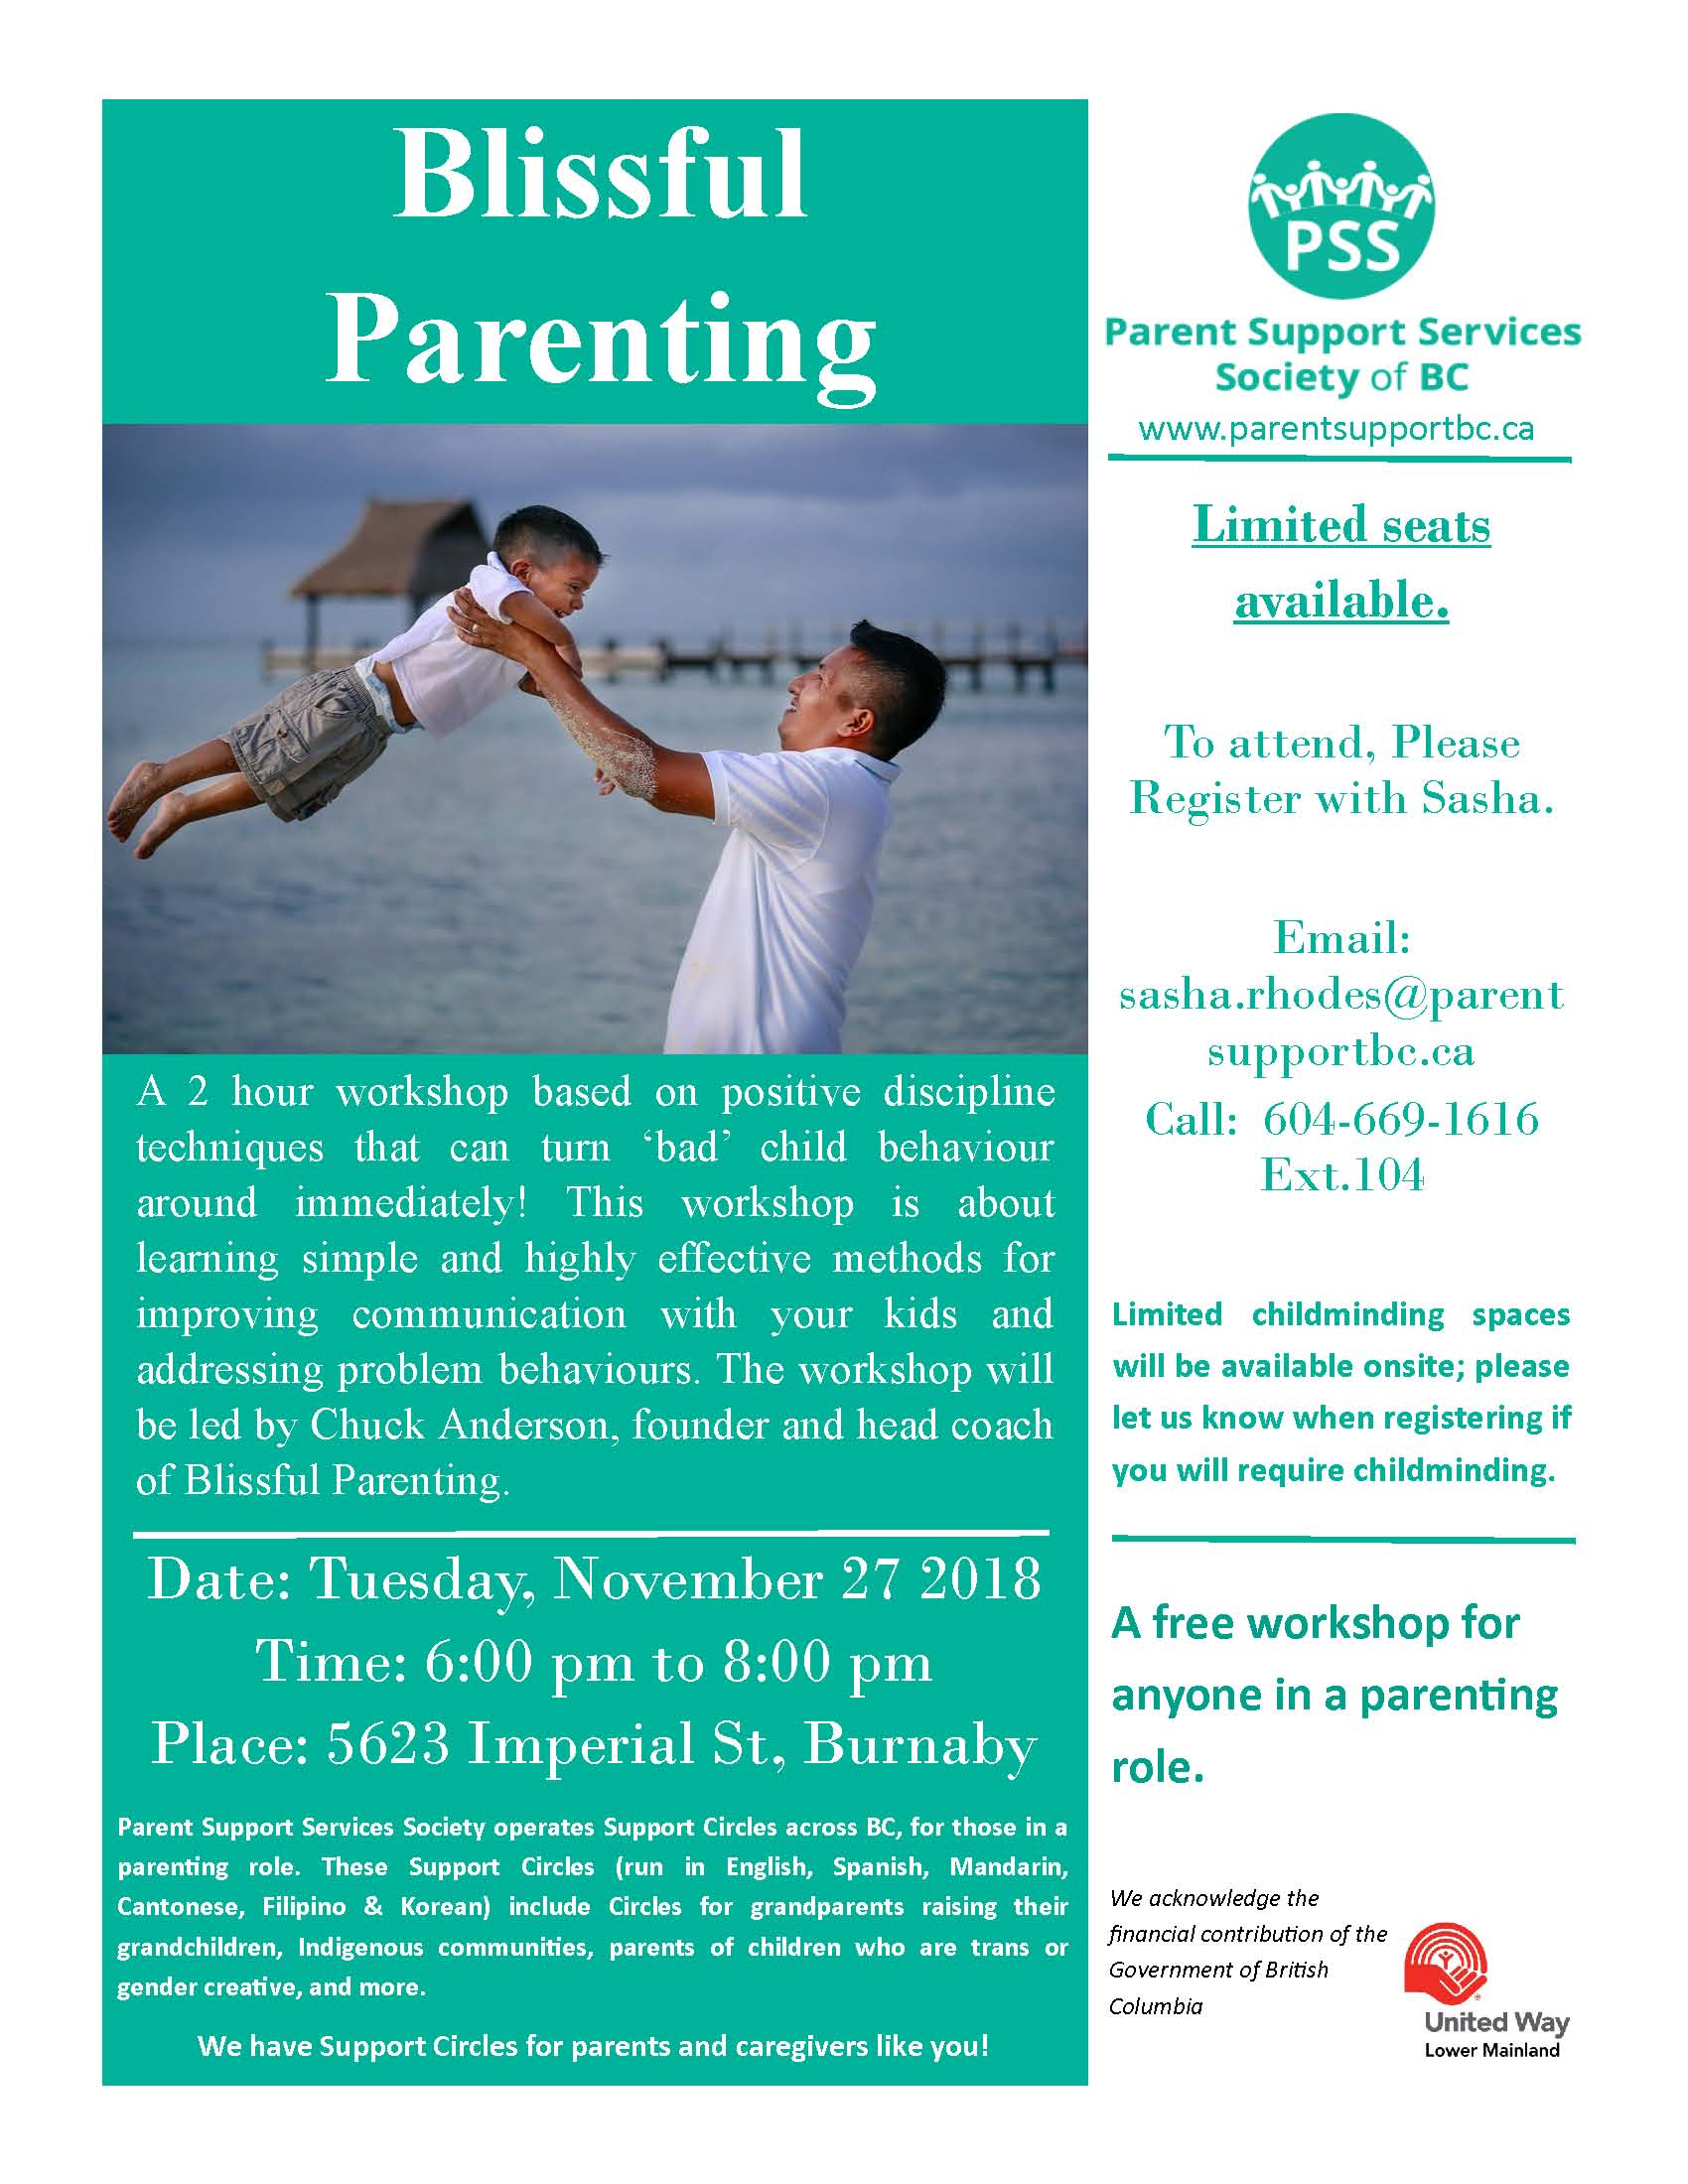 Parenting Education - Parent Support Services Society of BC